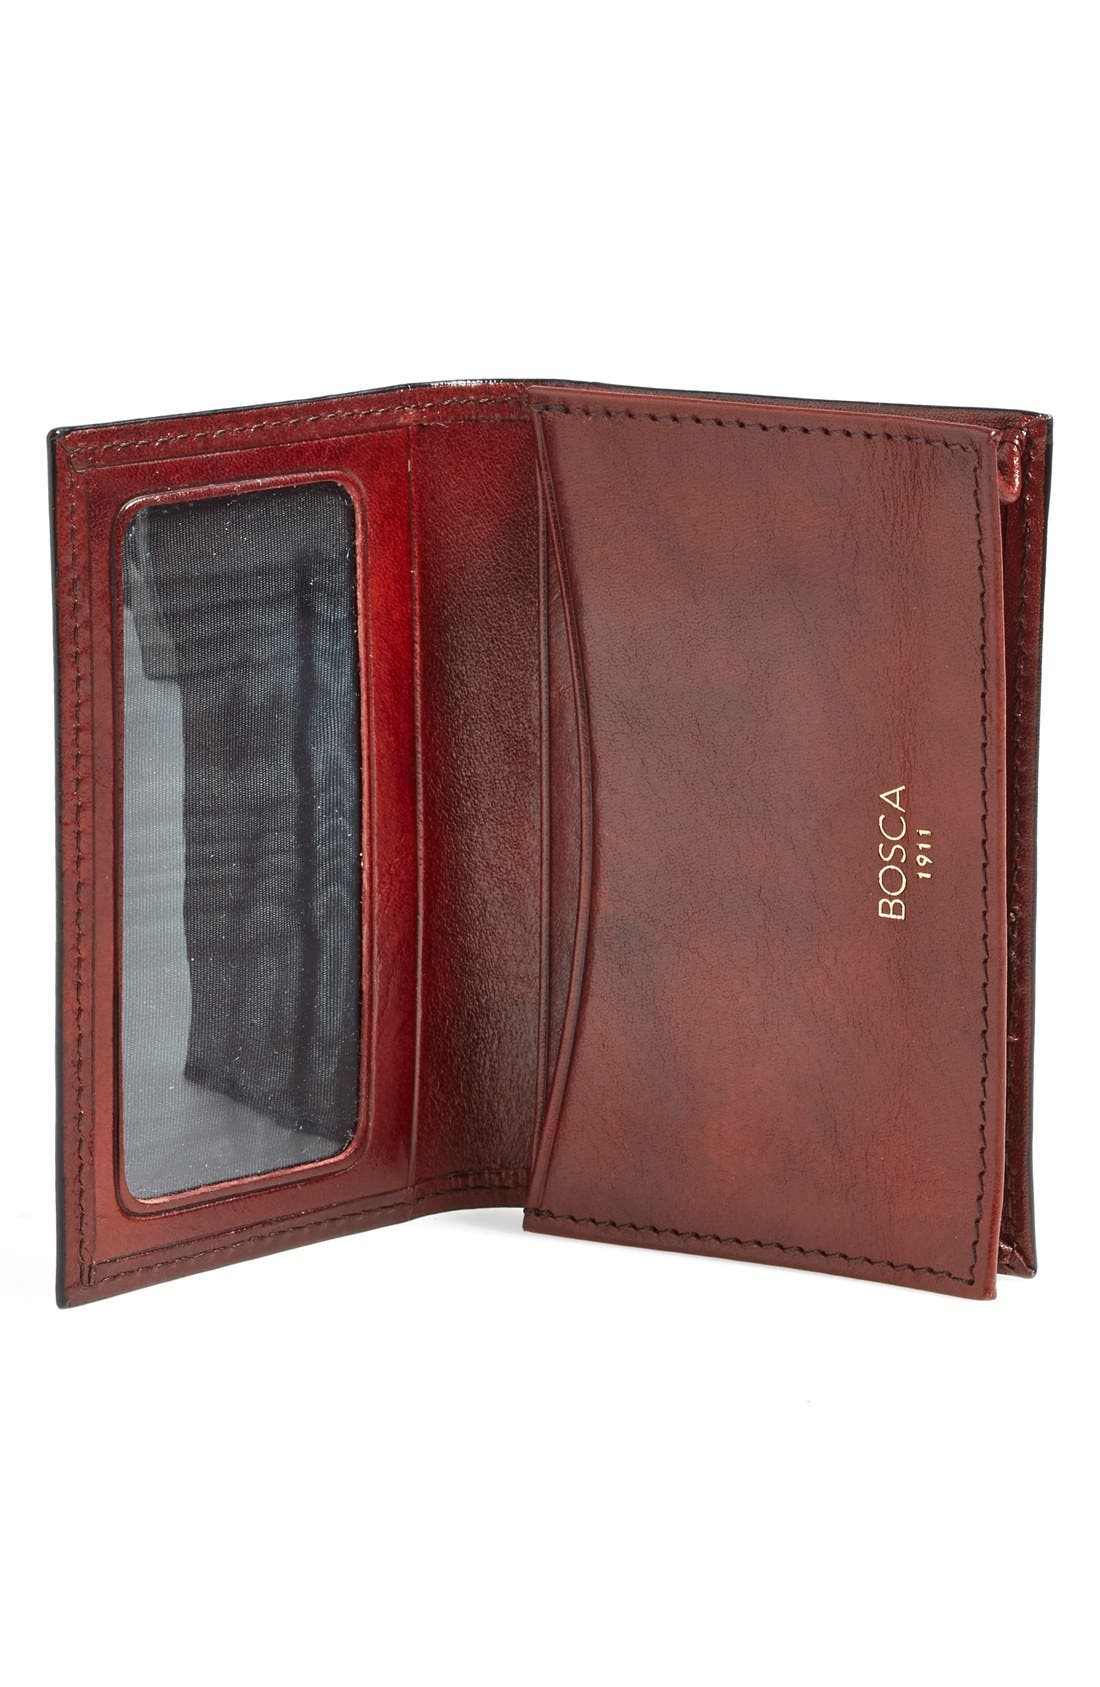 'Old Leather' Gusset Wallet,                             Alternate thumbnail 2, color,                             Dark Brown